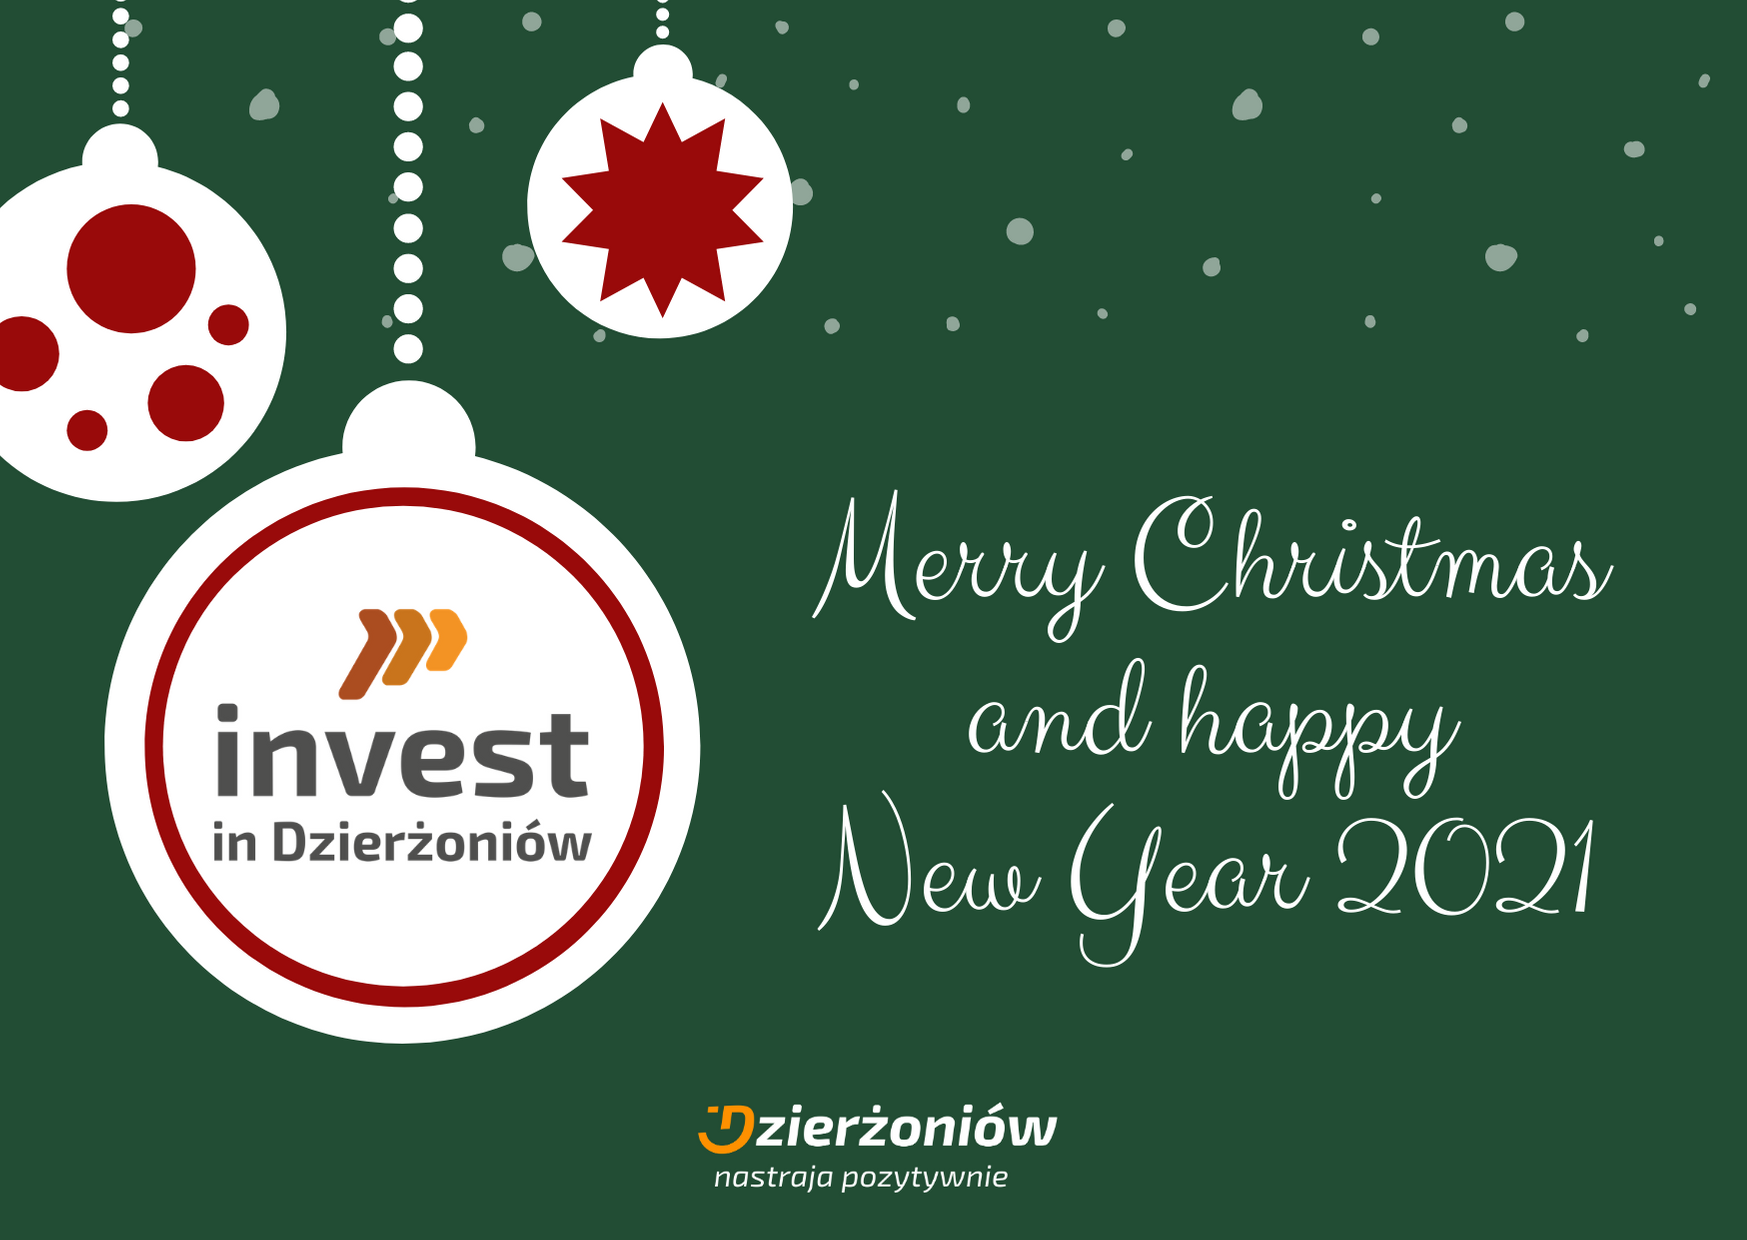 A healthy and peaceful Christmas. Prosperity and success in the New Year.